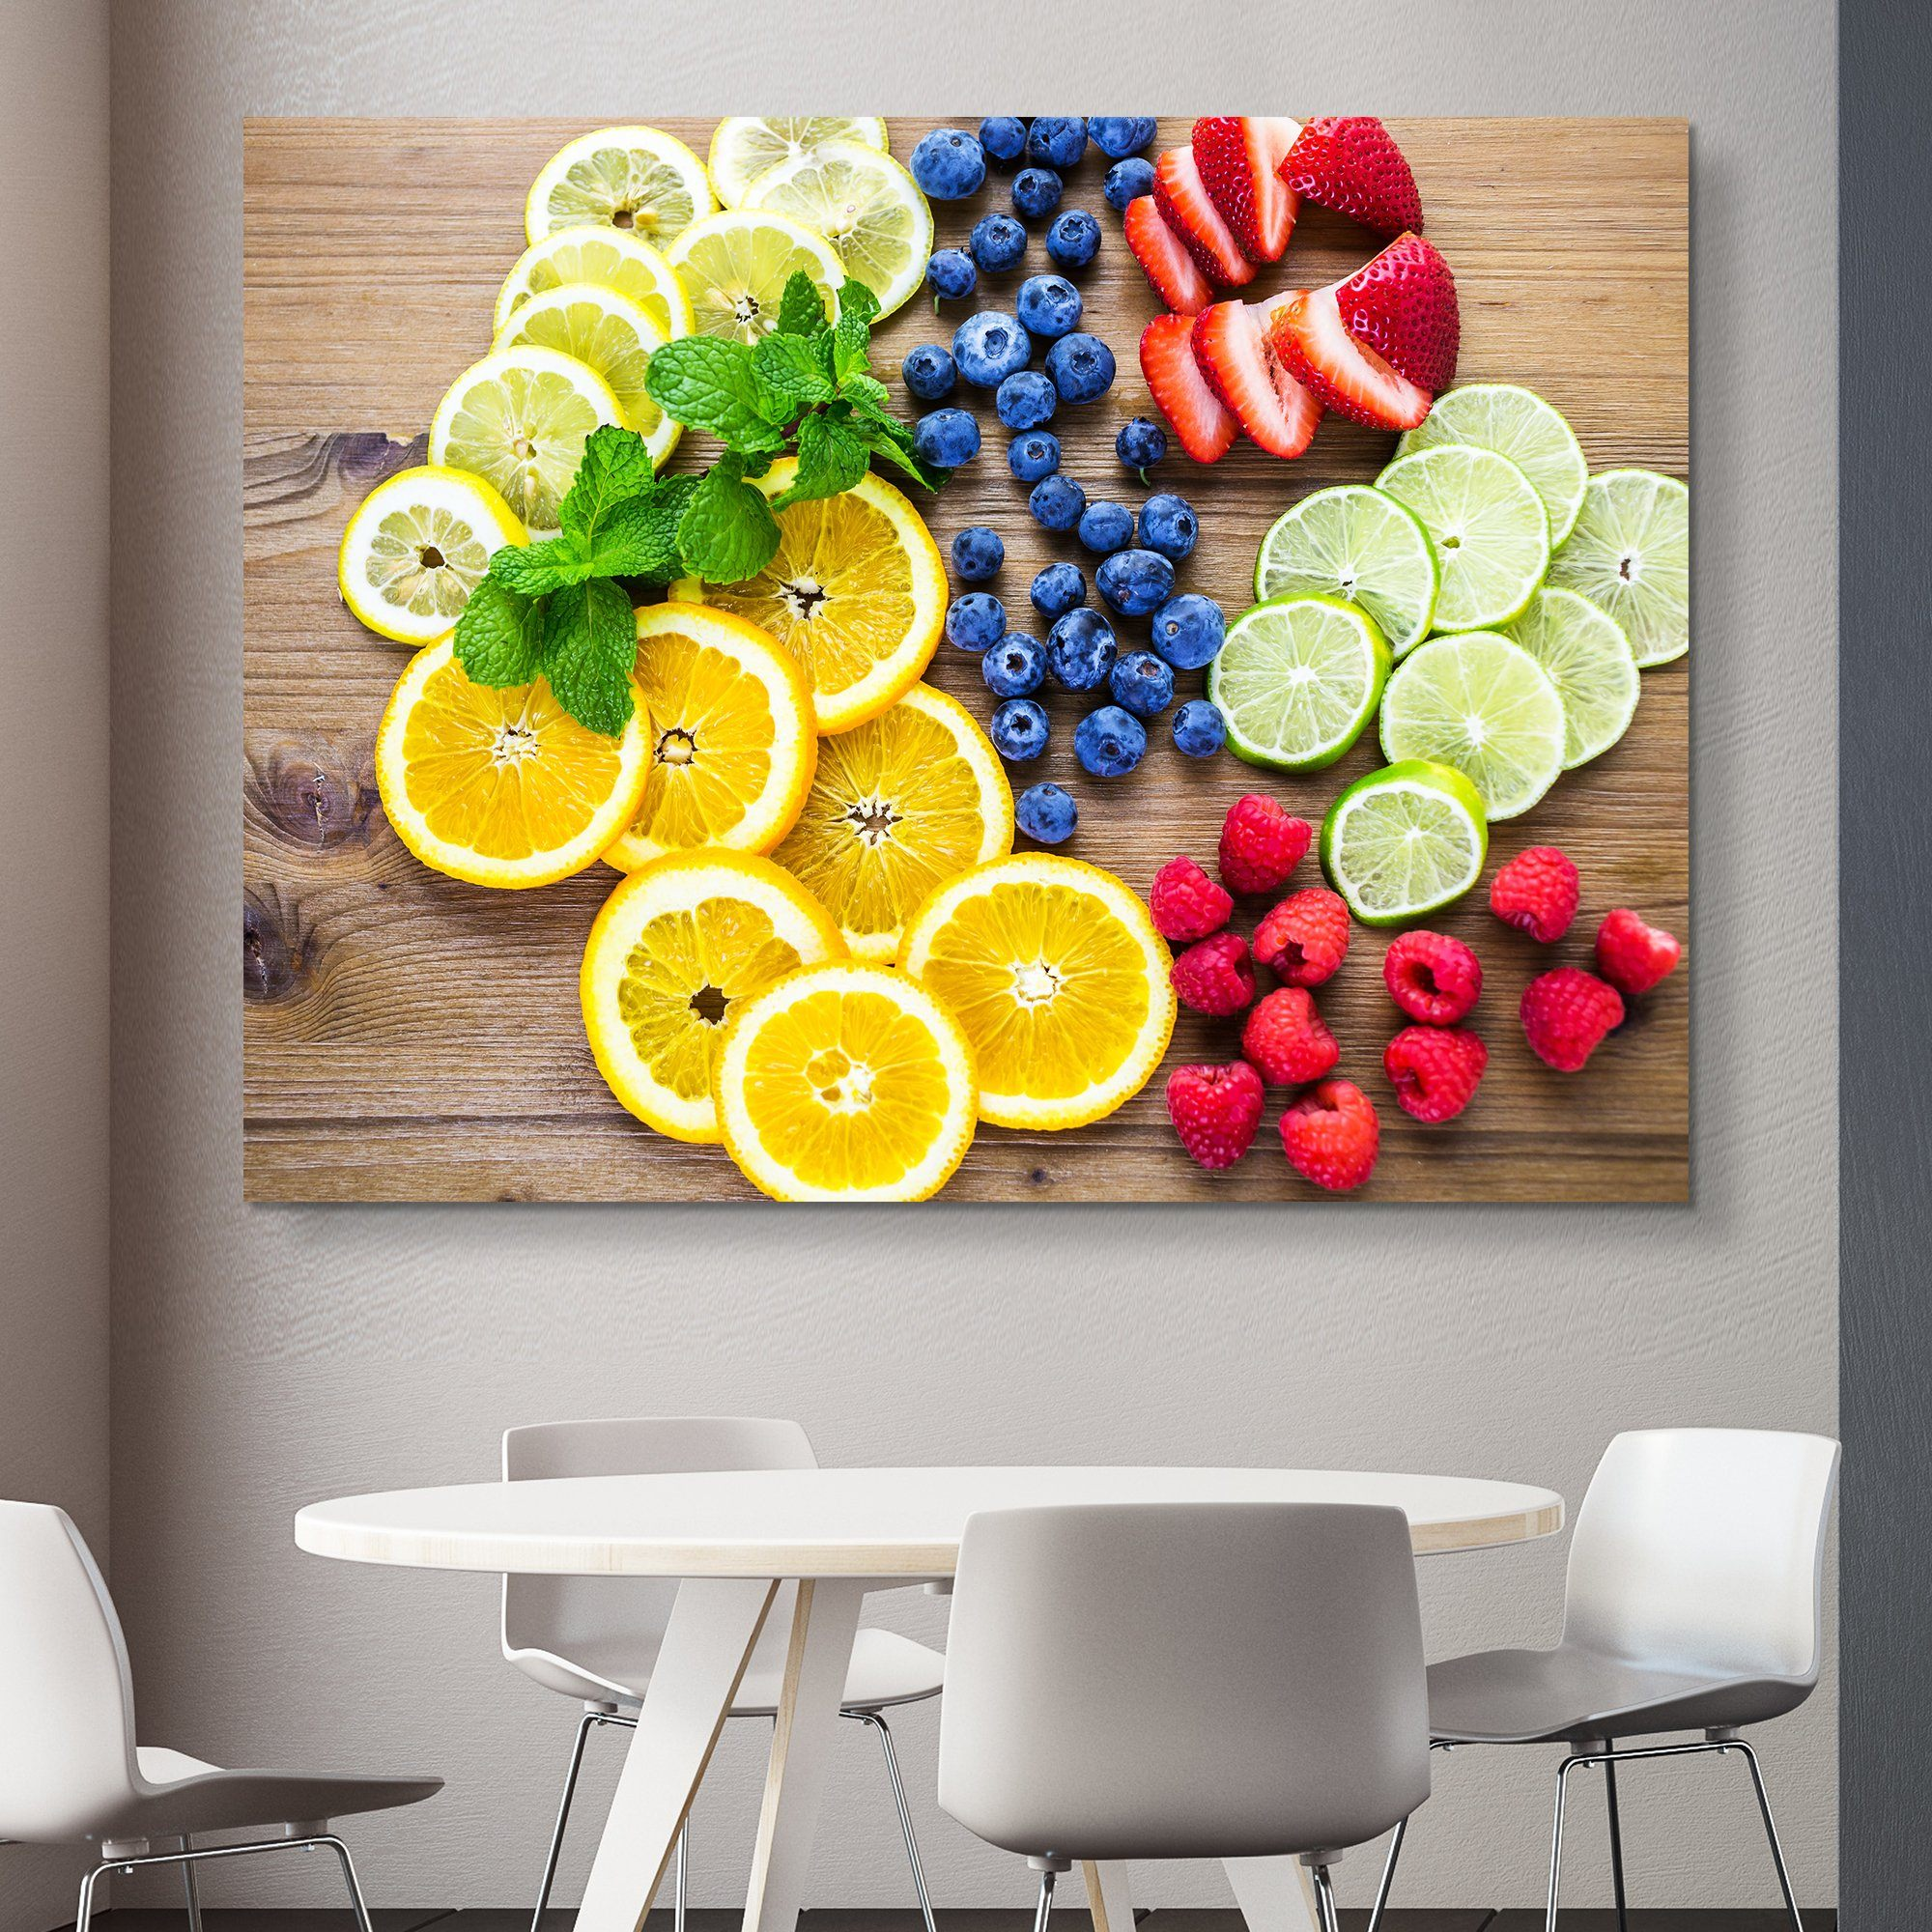 Sliced Fresh Fruits wall art